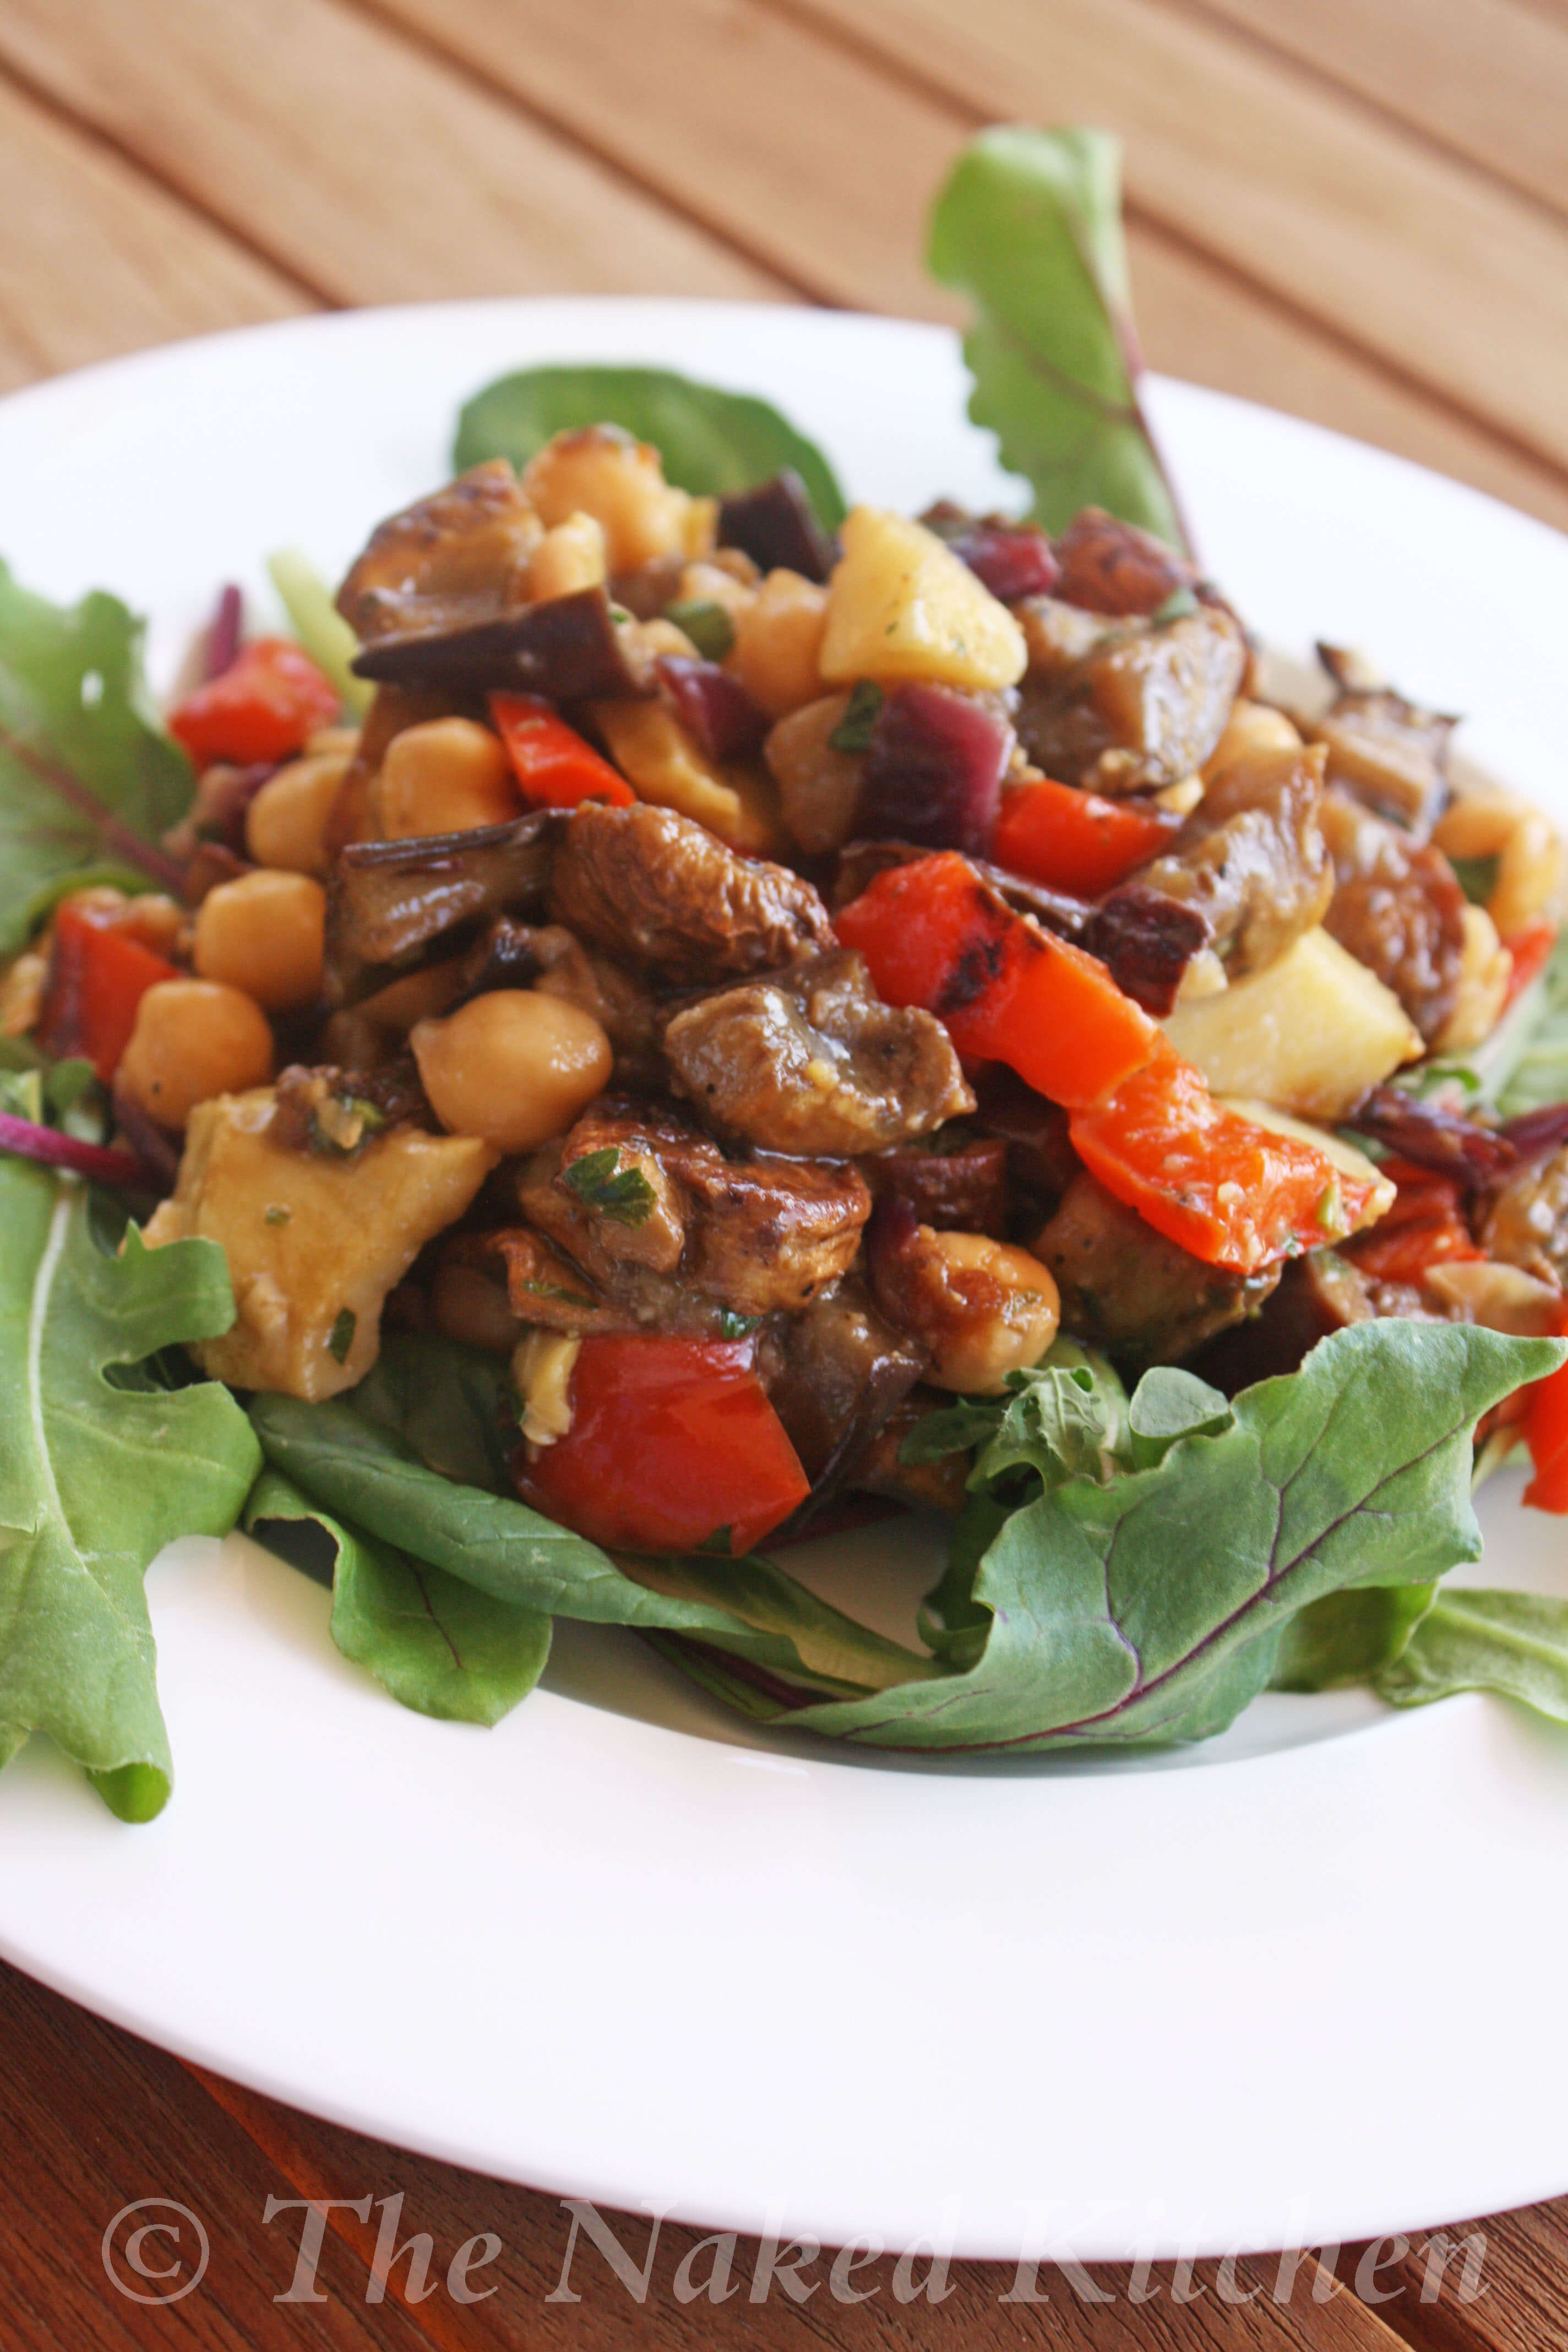 Mediterranean Roasted Vegetable and Chickpea Salad